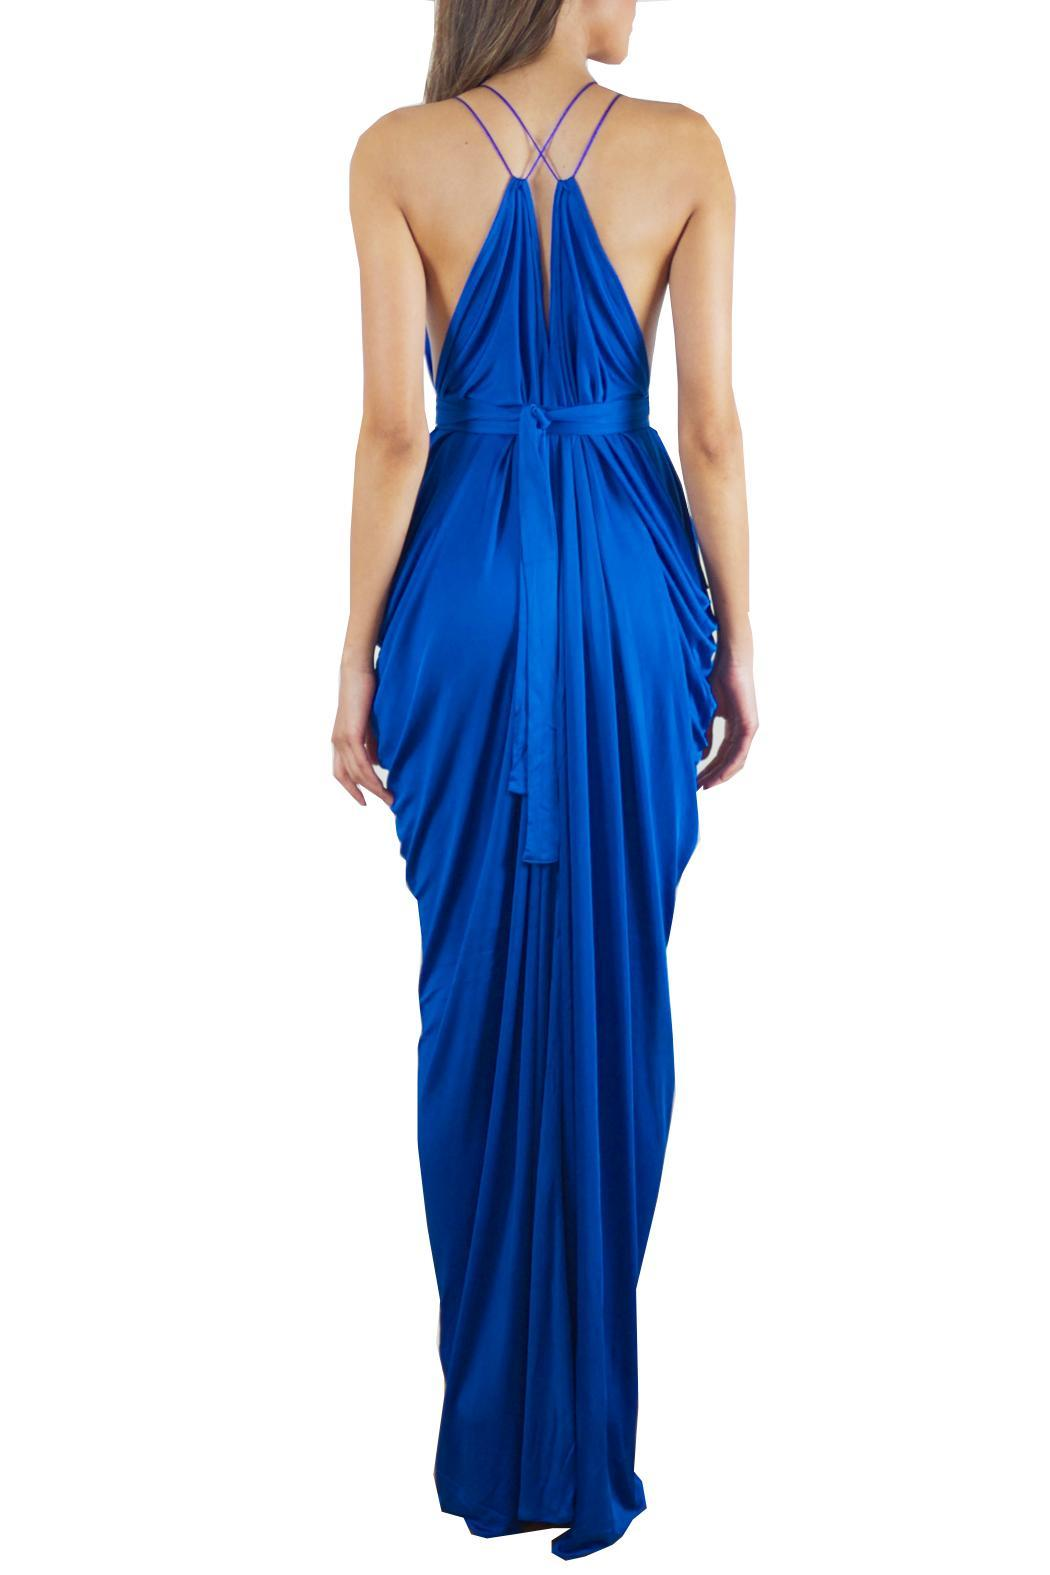 Lois London Cobalt Blue Dress from New York City — Shoptiques